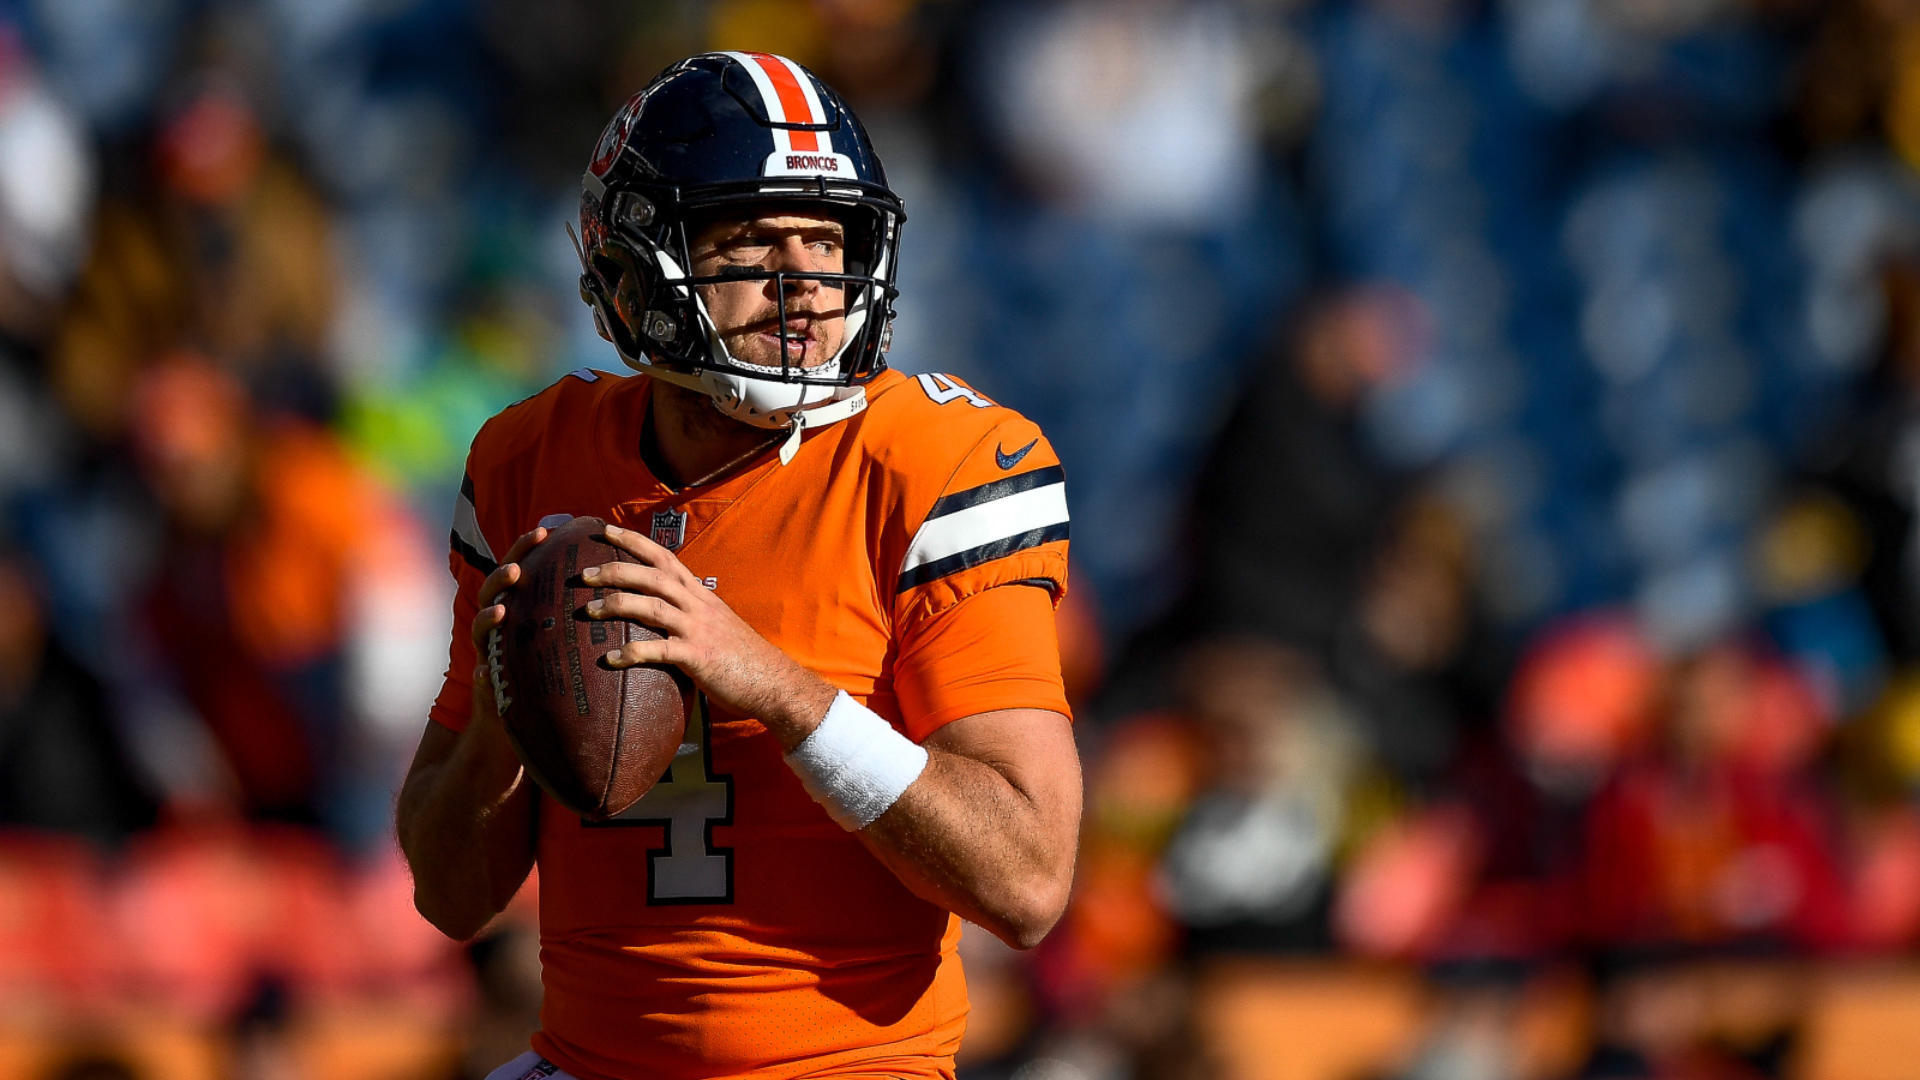 Keenum says Broncos are 'great group of fighters' after comeback win - CBSSports.com